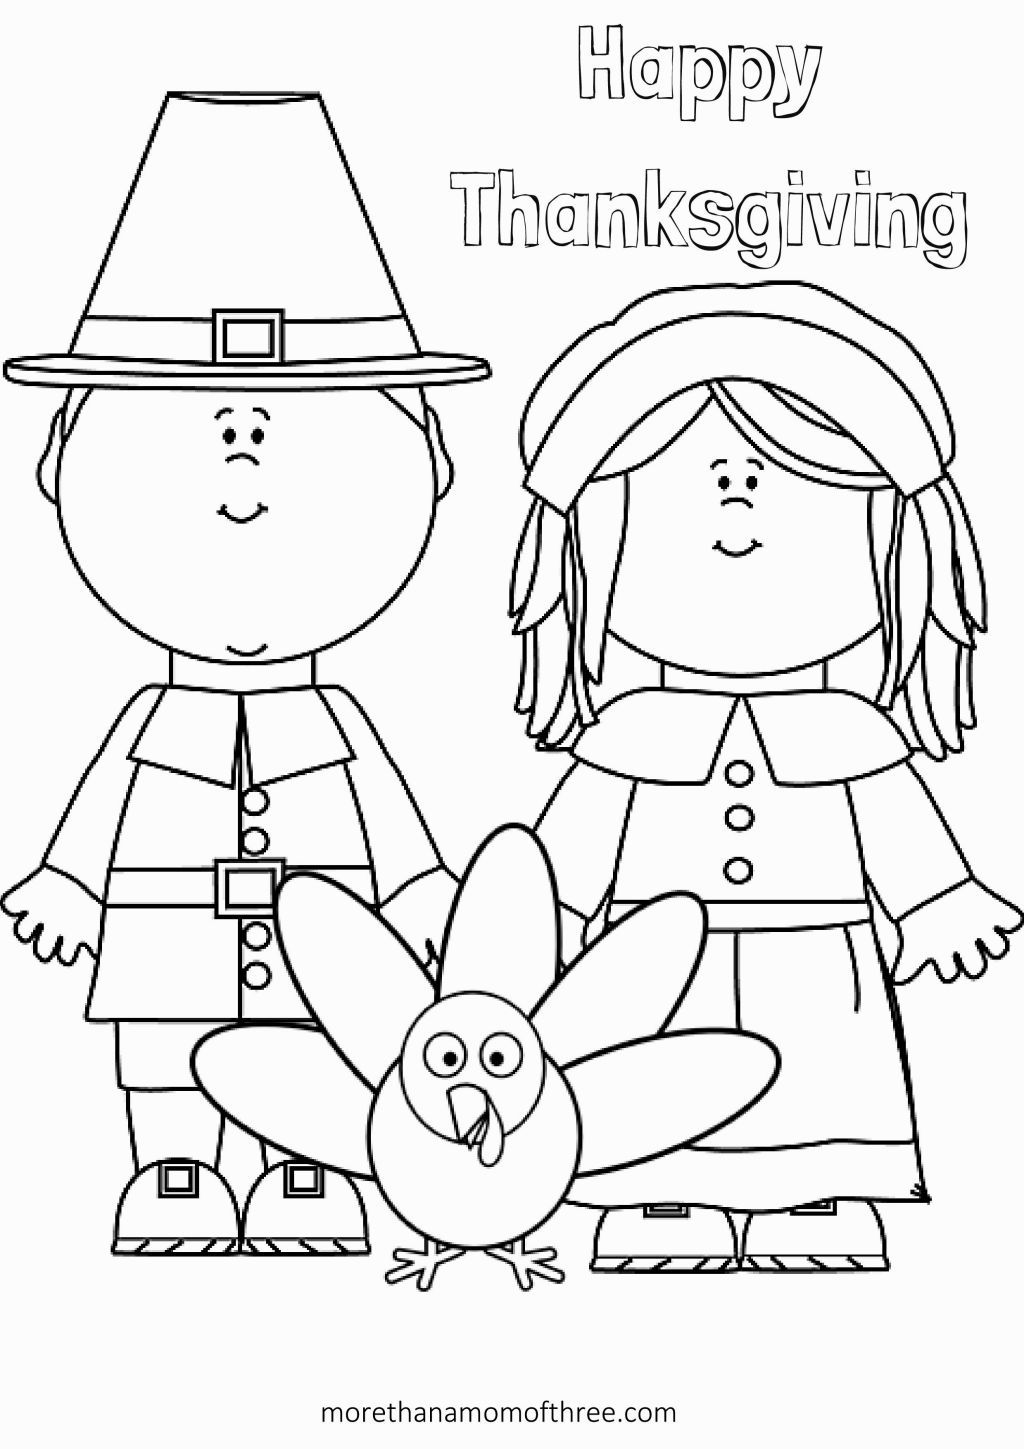 Thanksgiving preschool coloring pages az coloring pages for Coloring page for preschool